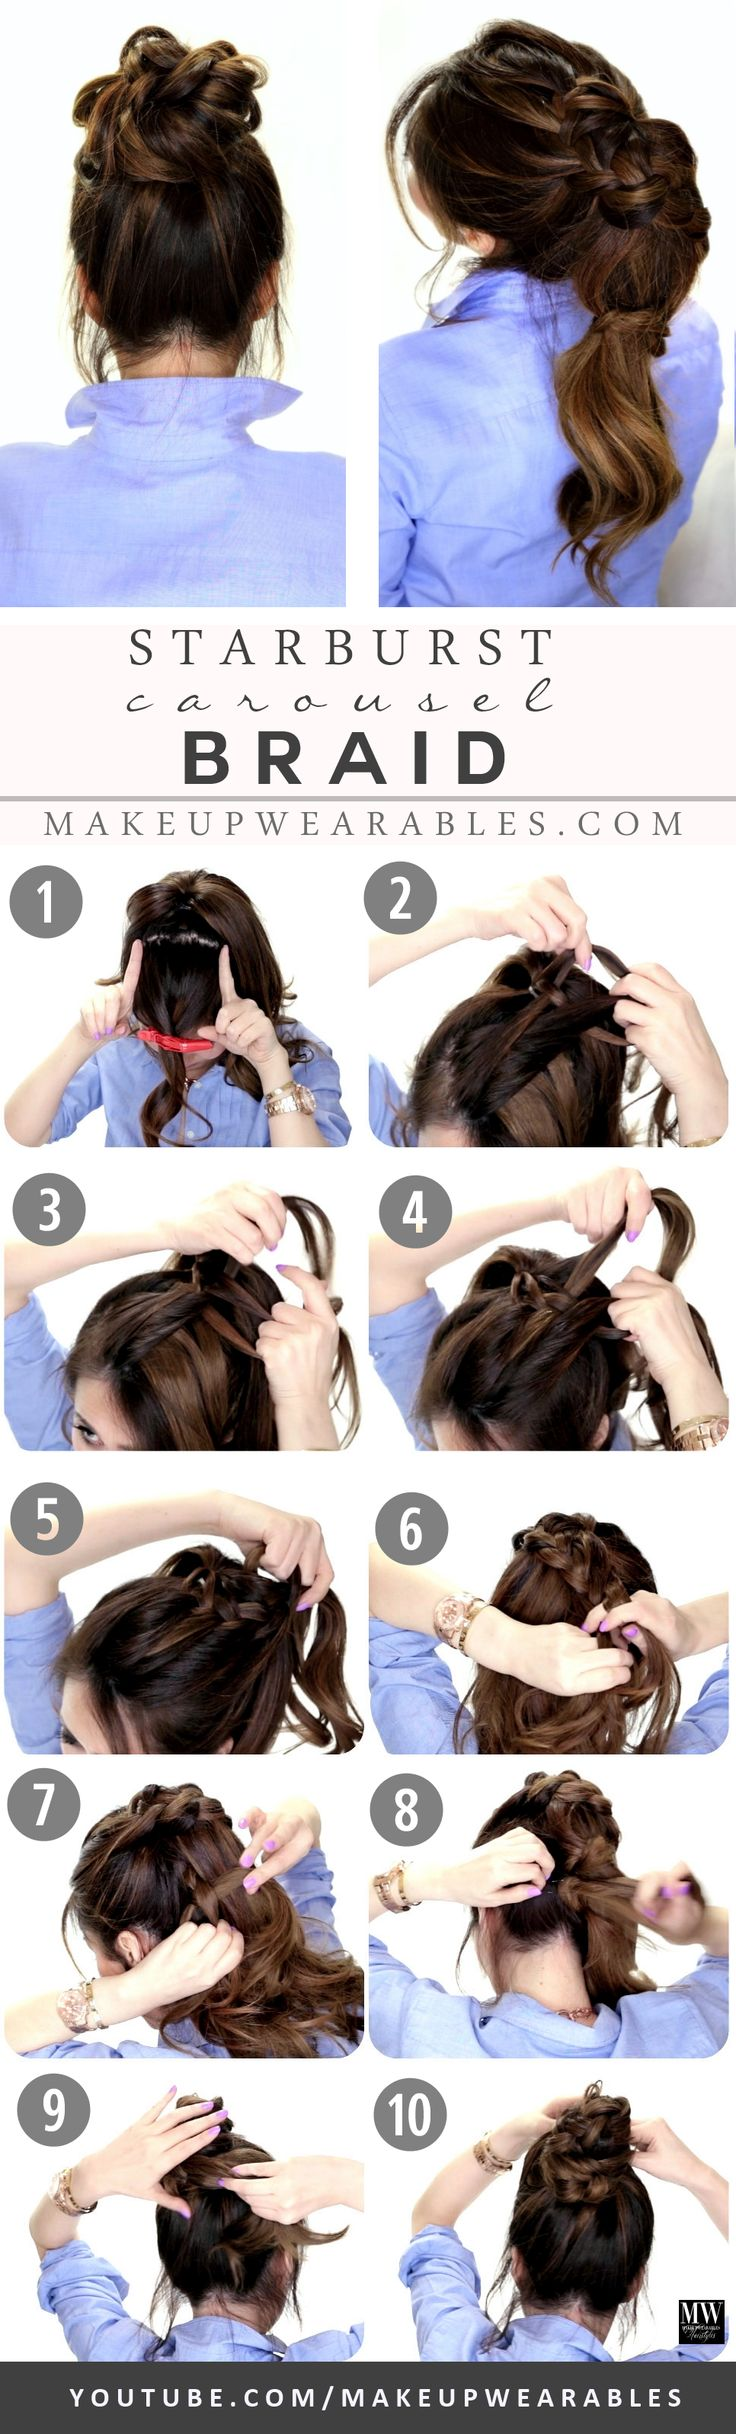 26 best Hair styles images on Pinterest | Hairstyles, Braids and ...